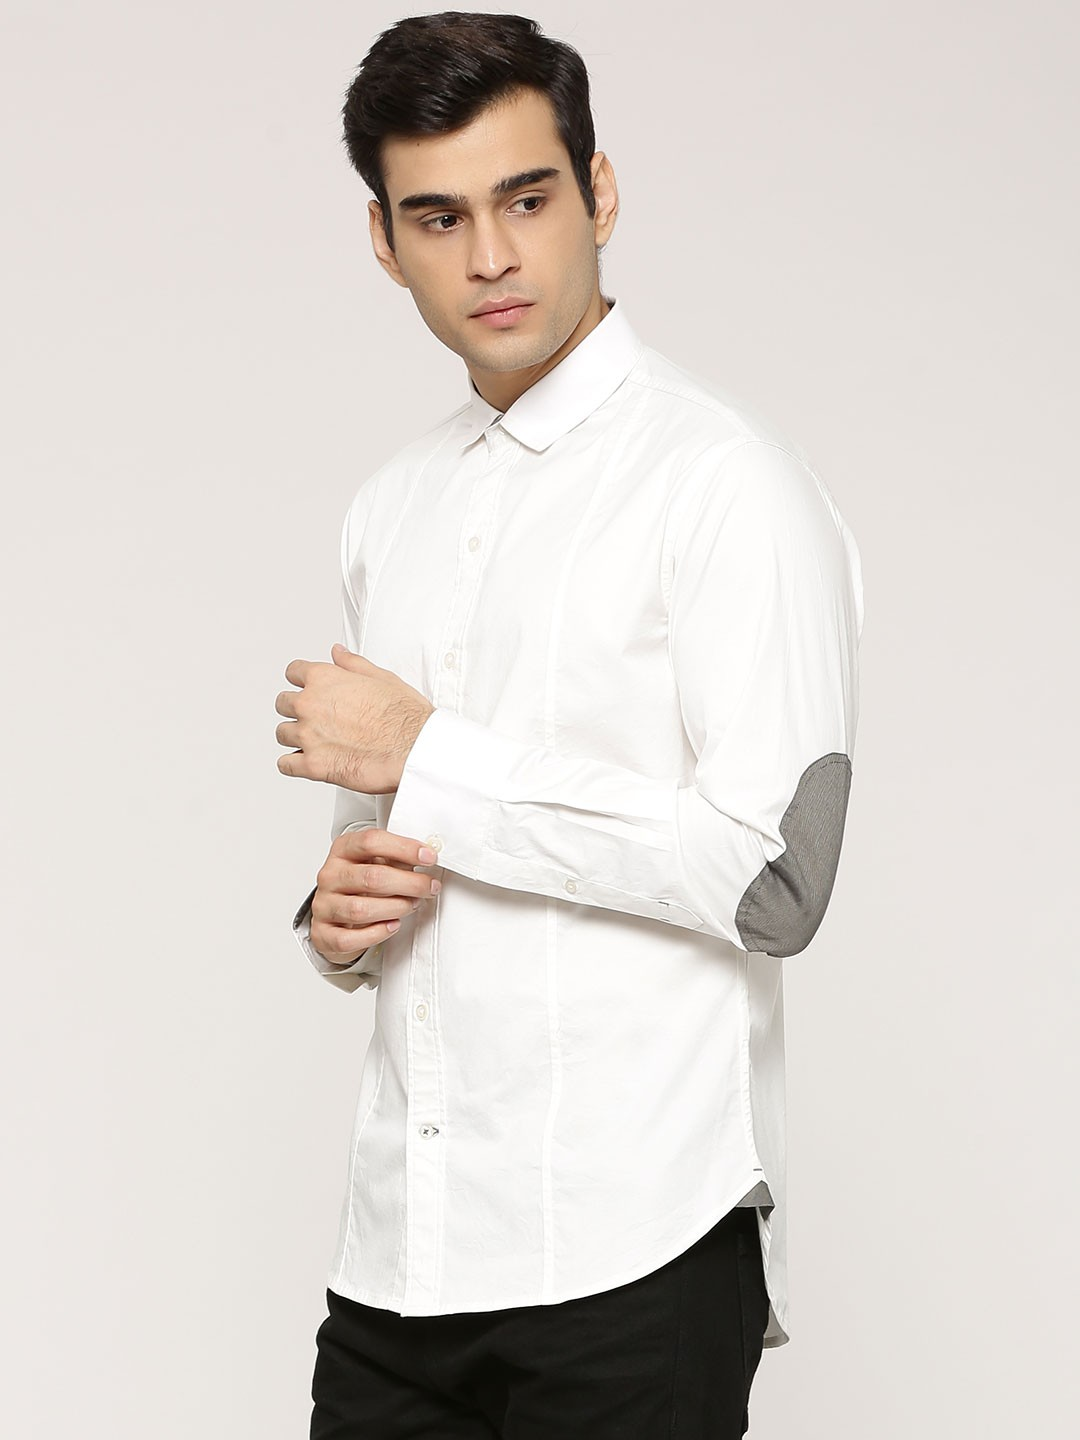 Buy zobello shirt with elbow patch for men men 39 s off for Buy men shirts online